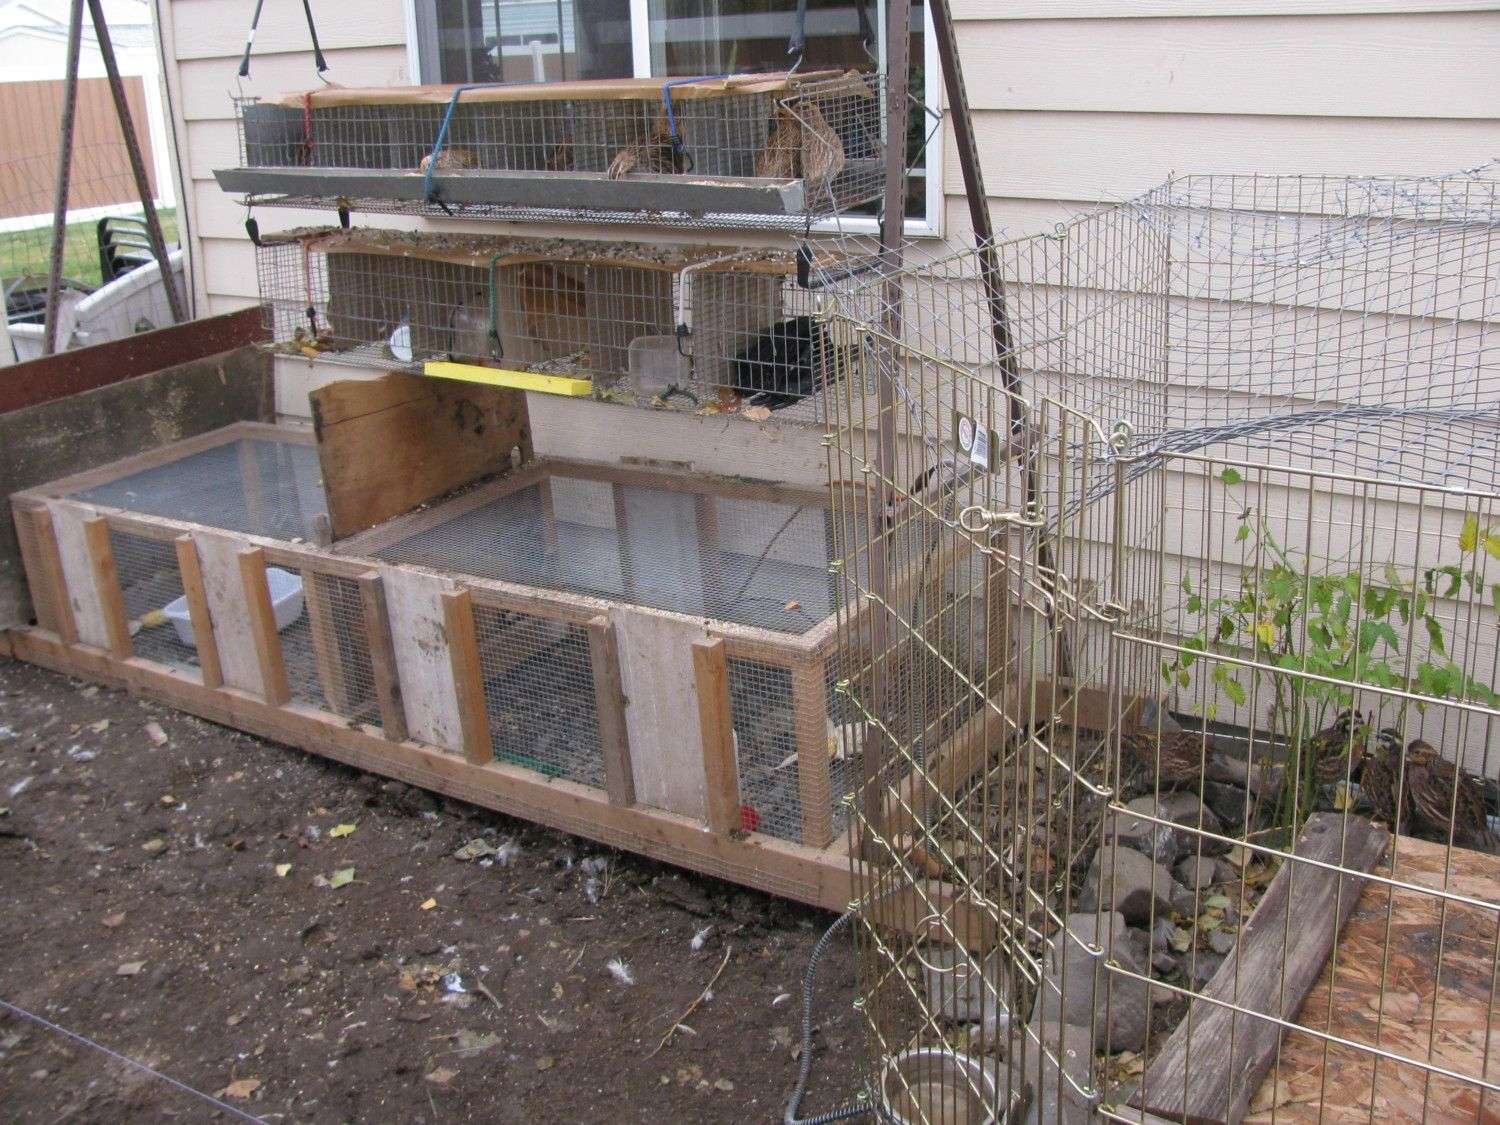 quails cage - photo #43